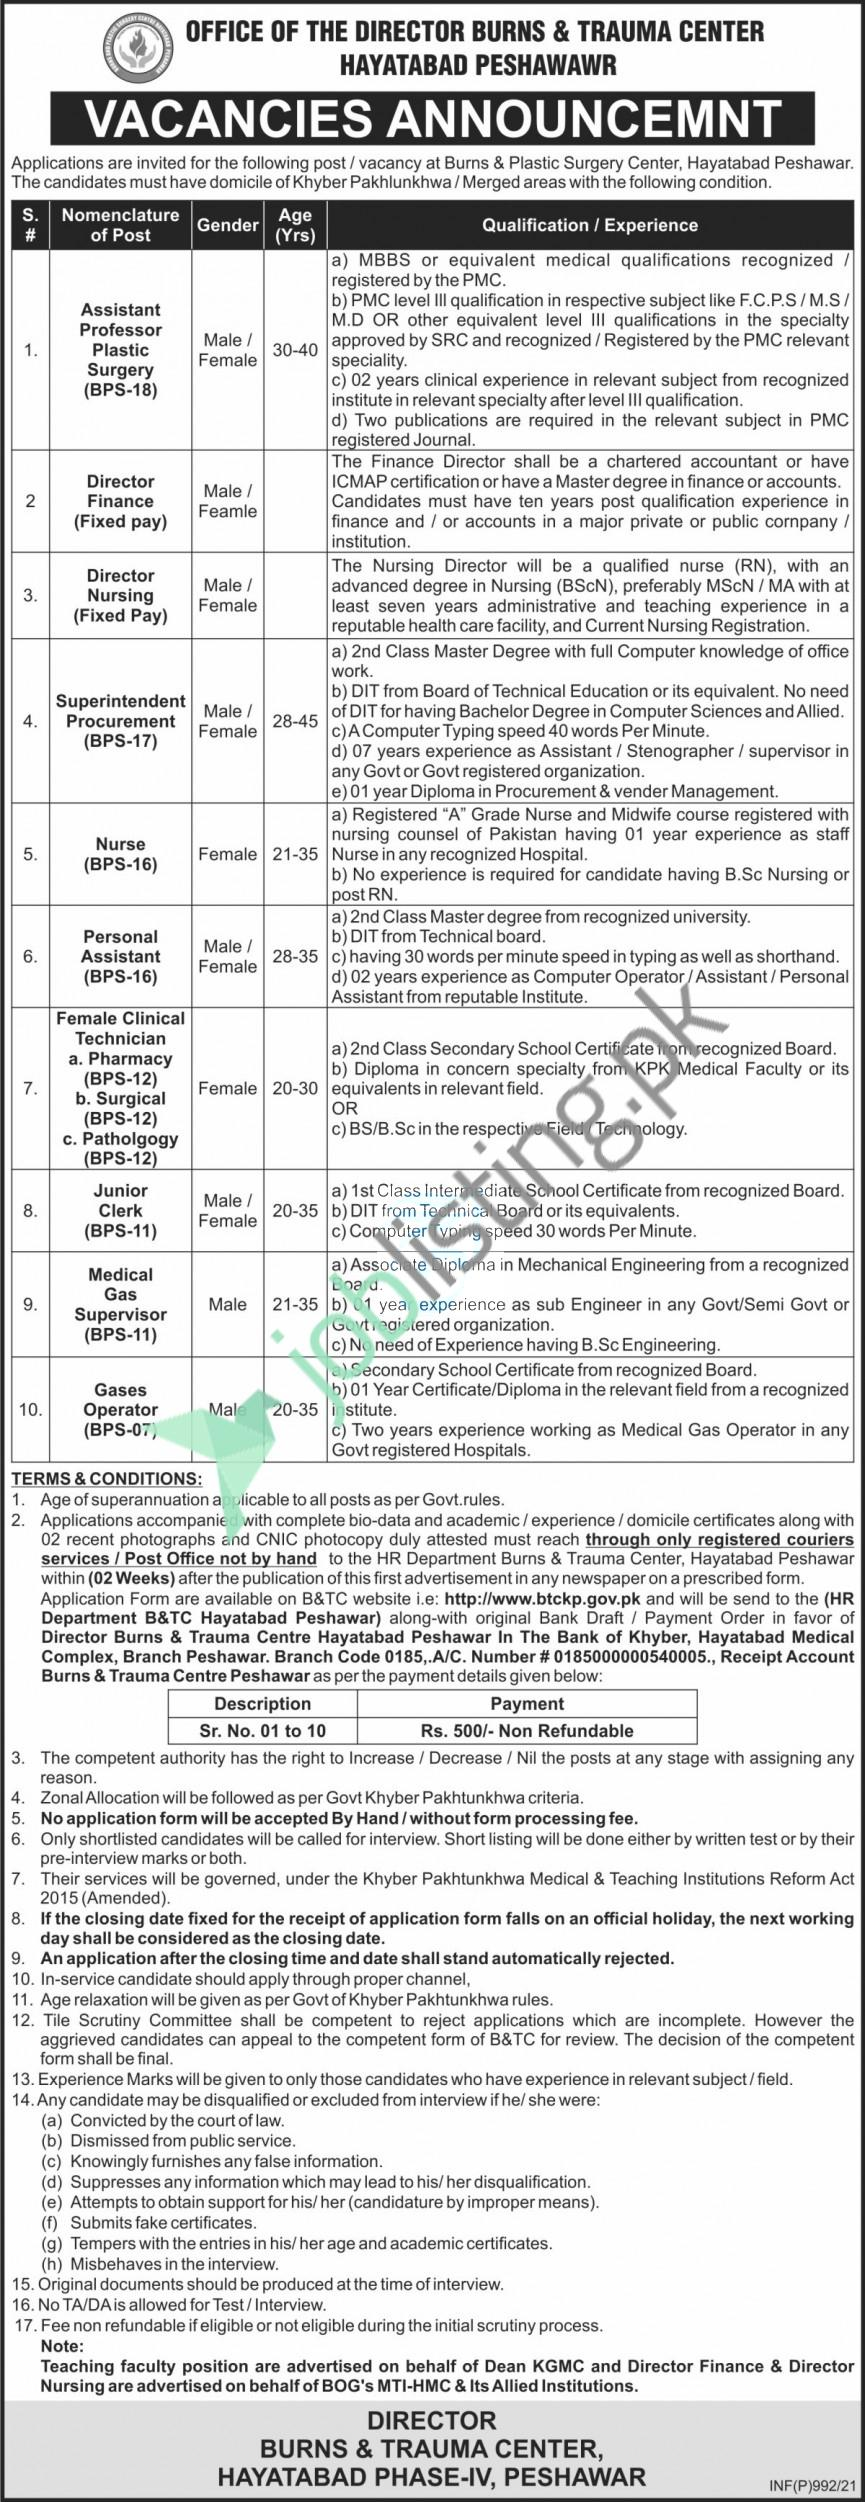 Director Burns & Trauma Center Hayatabad Peshawar Jobs 2021